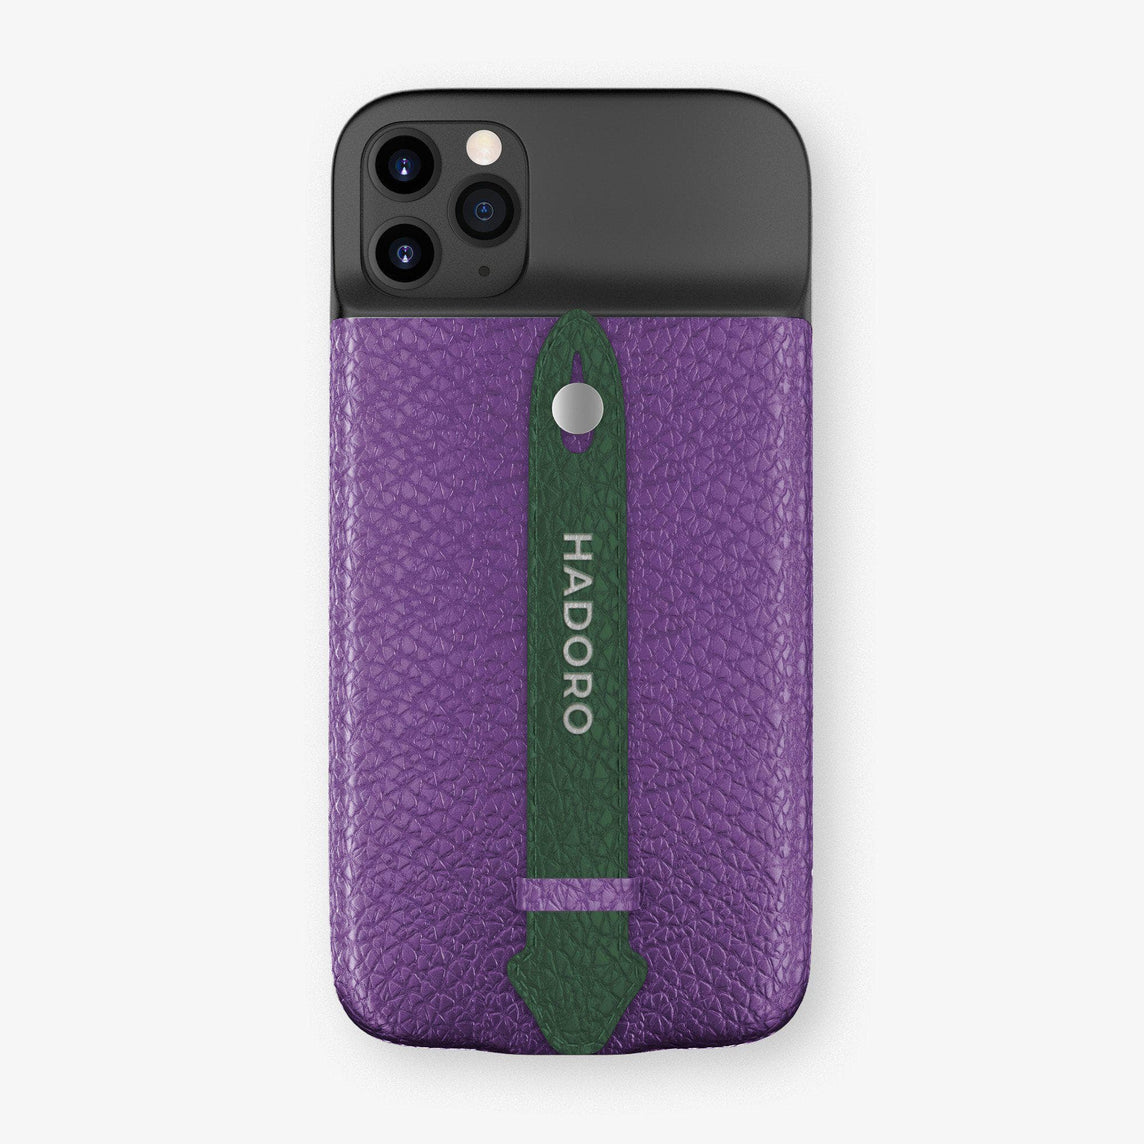 Calfskin Battery Finger Case for iPhone 11 Pro Max | Purple/Green - Stainless Steel without-personalization